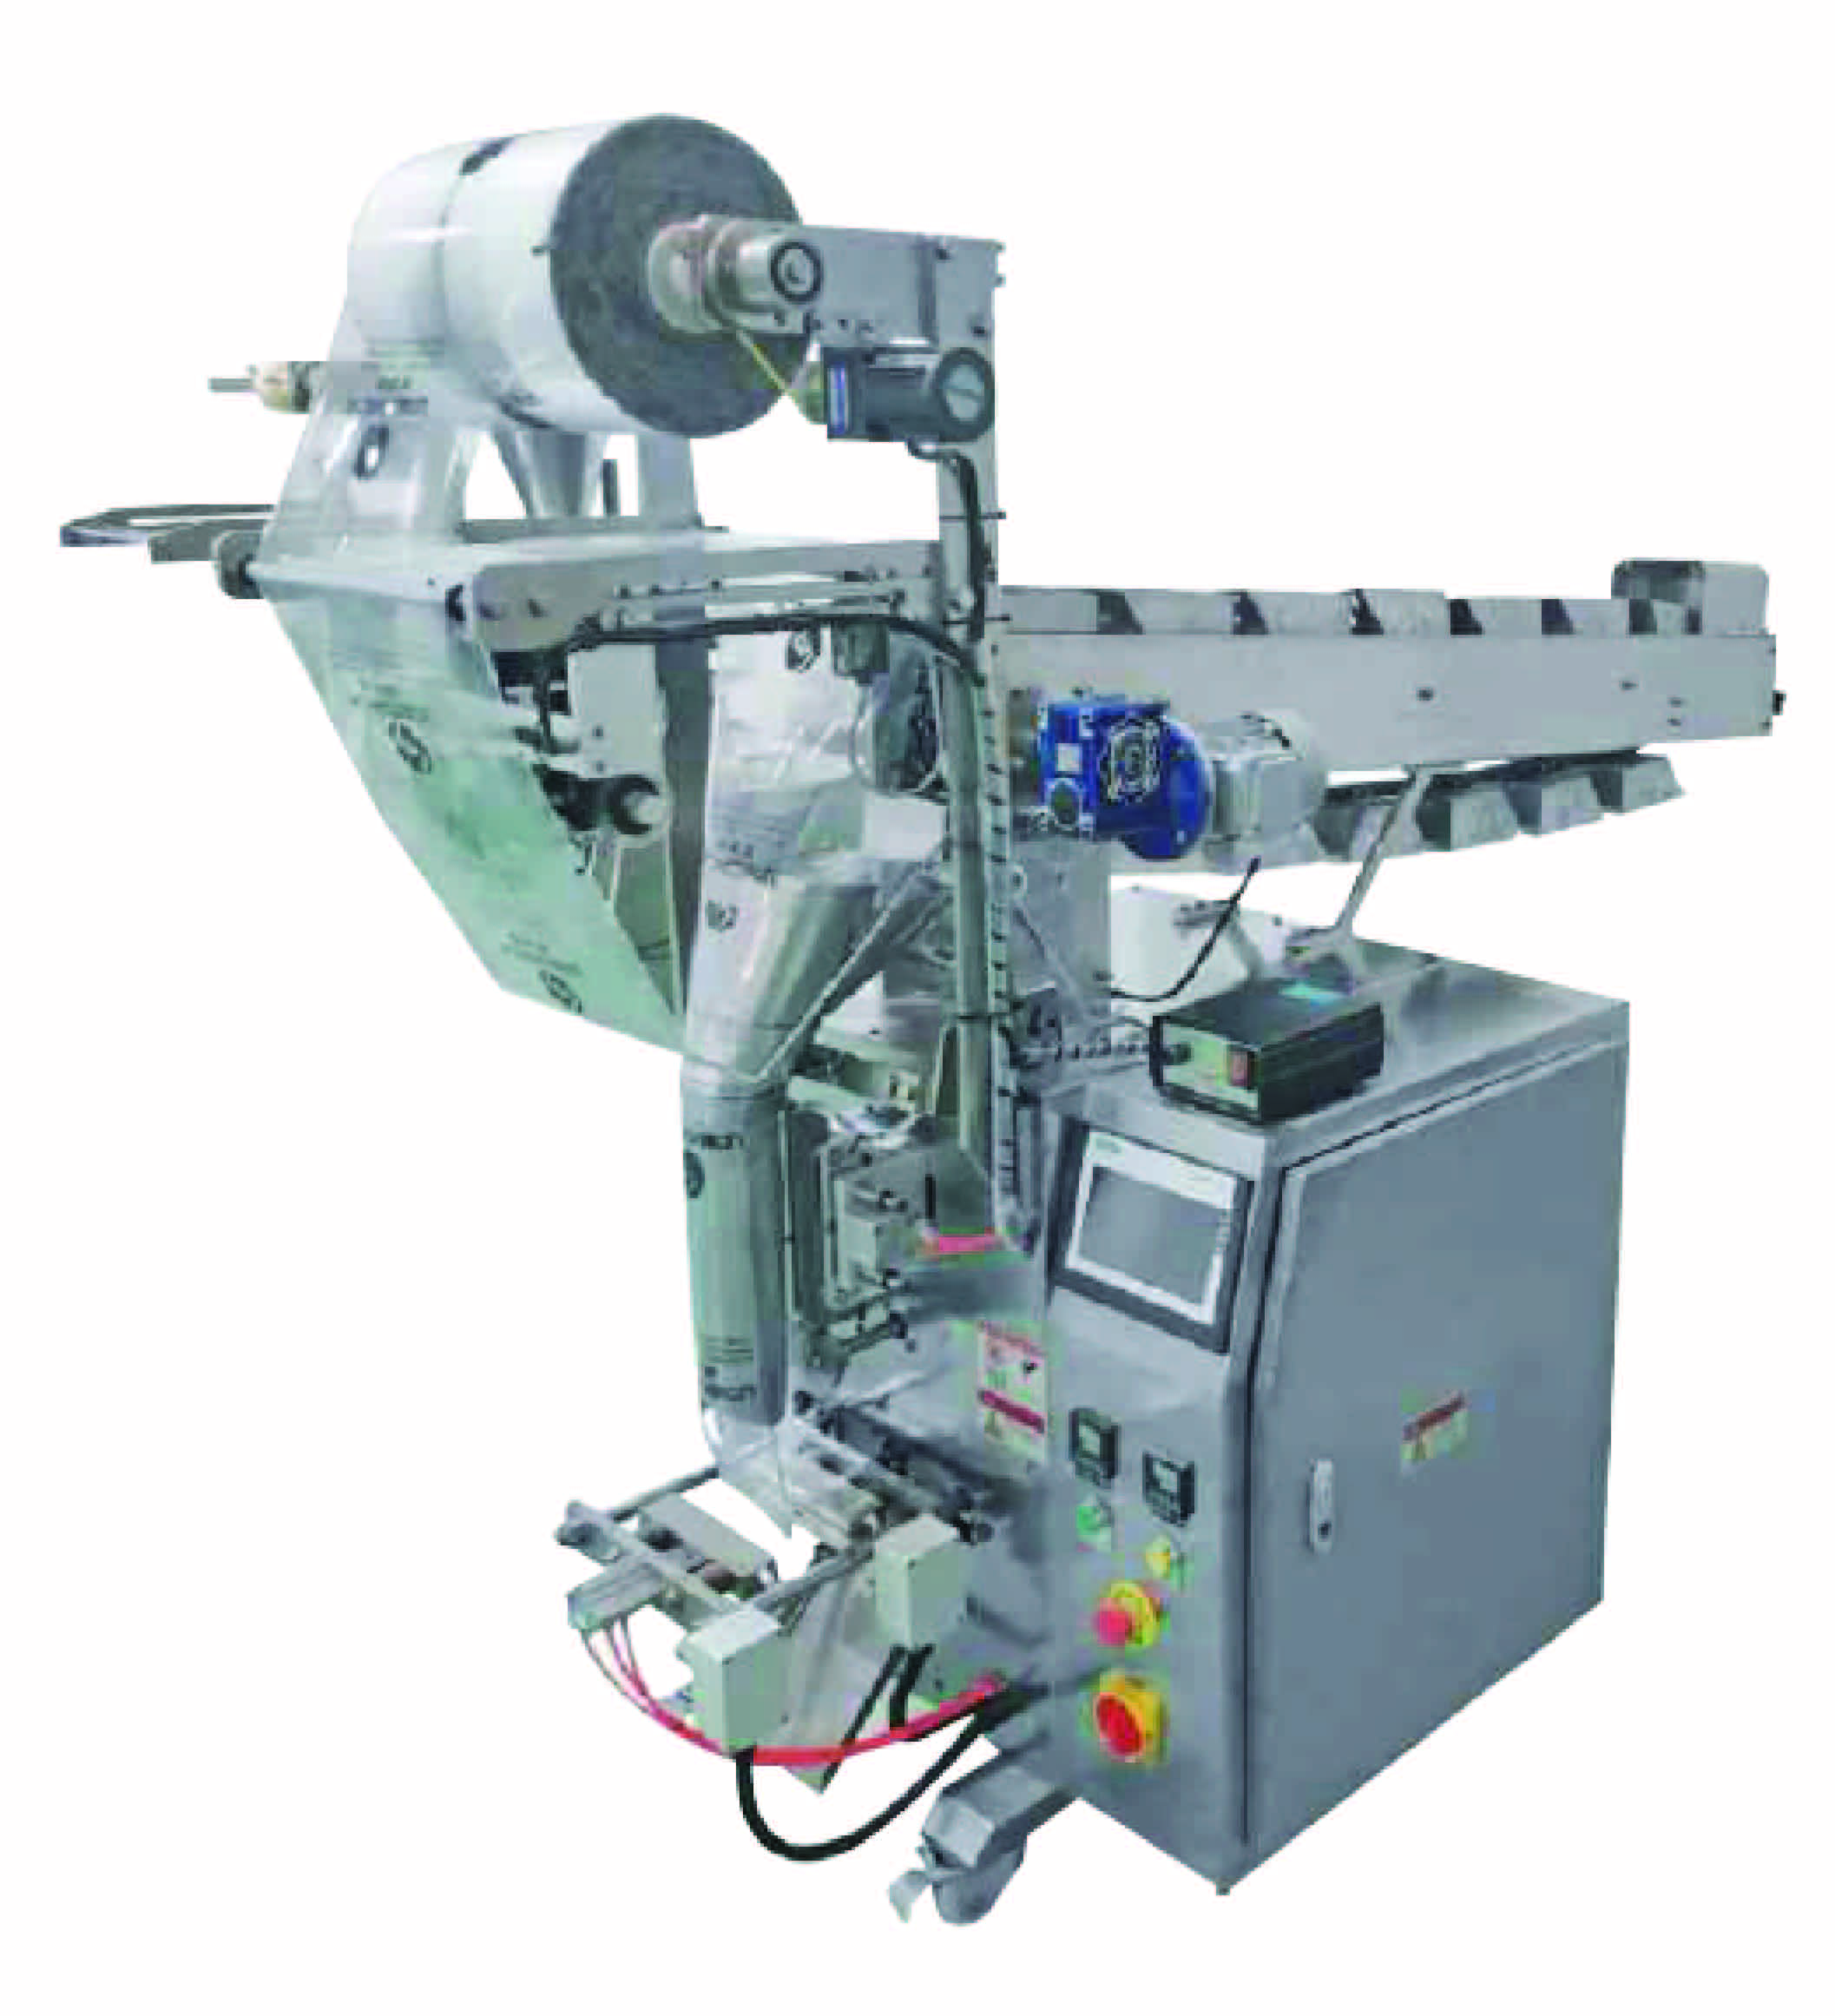 2-9_hal2 A (3) SEMI VERTICAL BUCKET PACKING MACHINE MSP-V160B